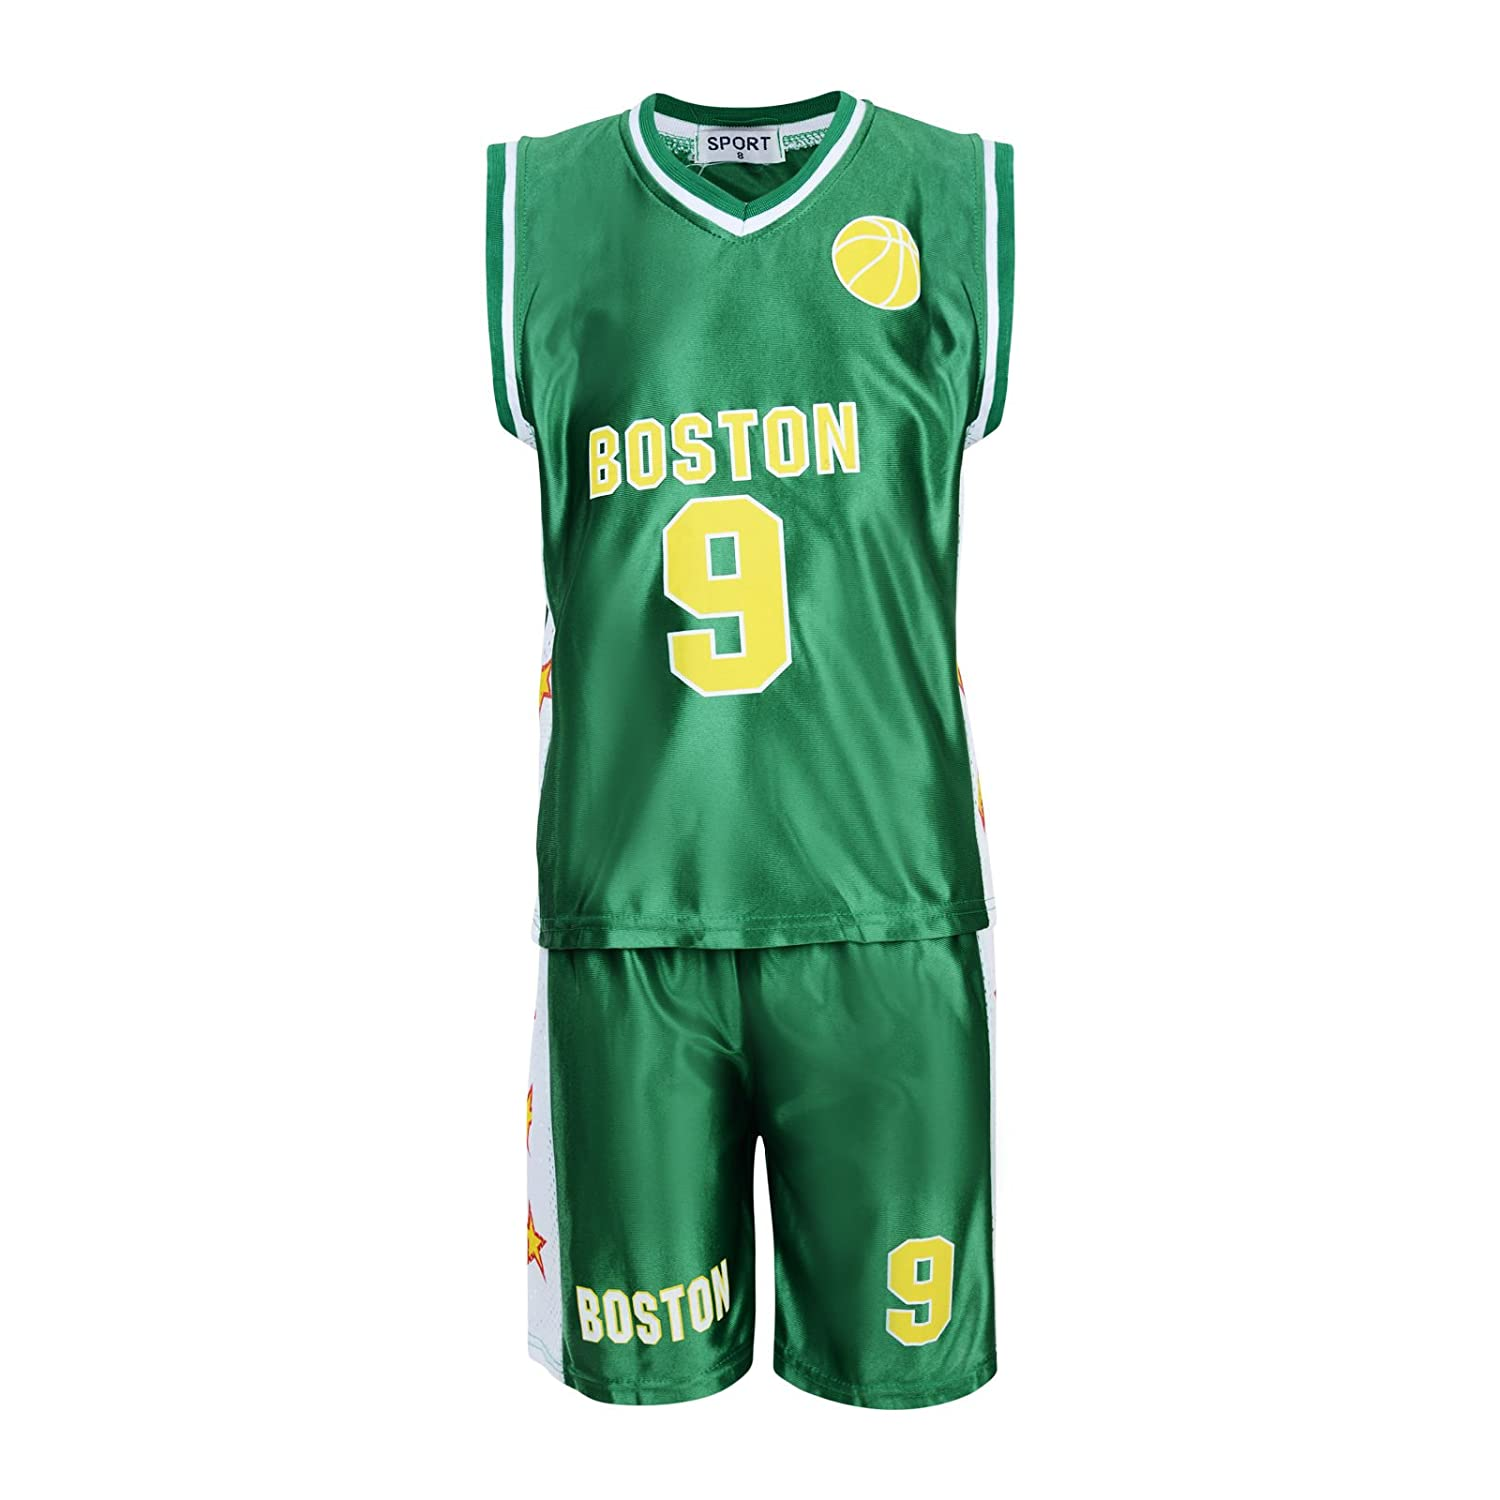 BOYS BASKETBALL VEST TOP /& SHORTS SET KIT 3-13 YEARS